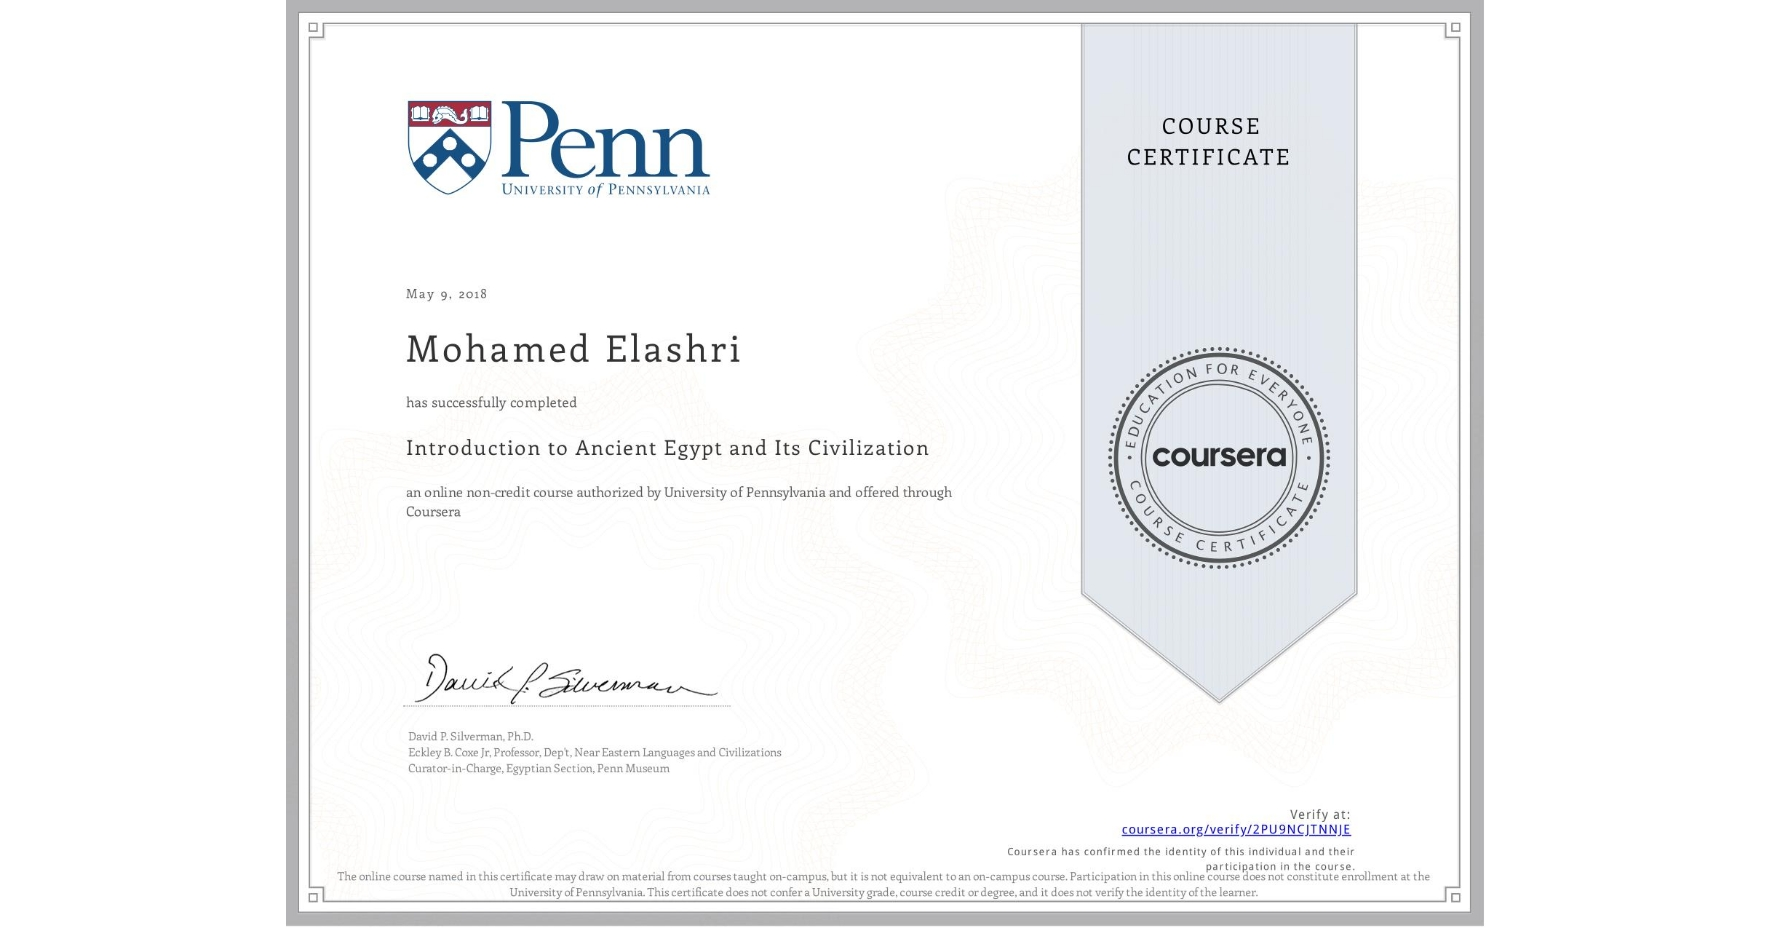 View certificate for Mohamed Elashri, Introduction to Ancient Egypt and Its Civilization, an online non-credit course authorized by University of Pennsylvania and offered through Coursera